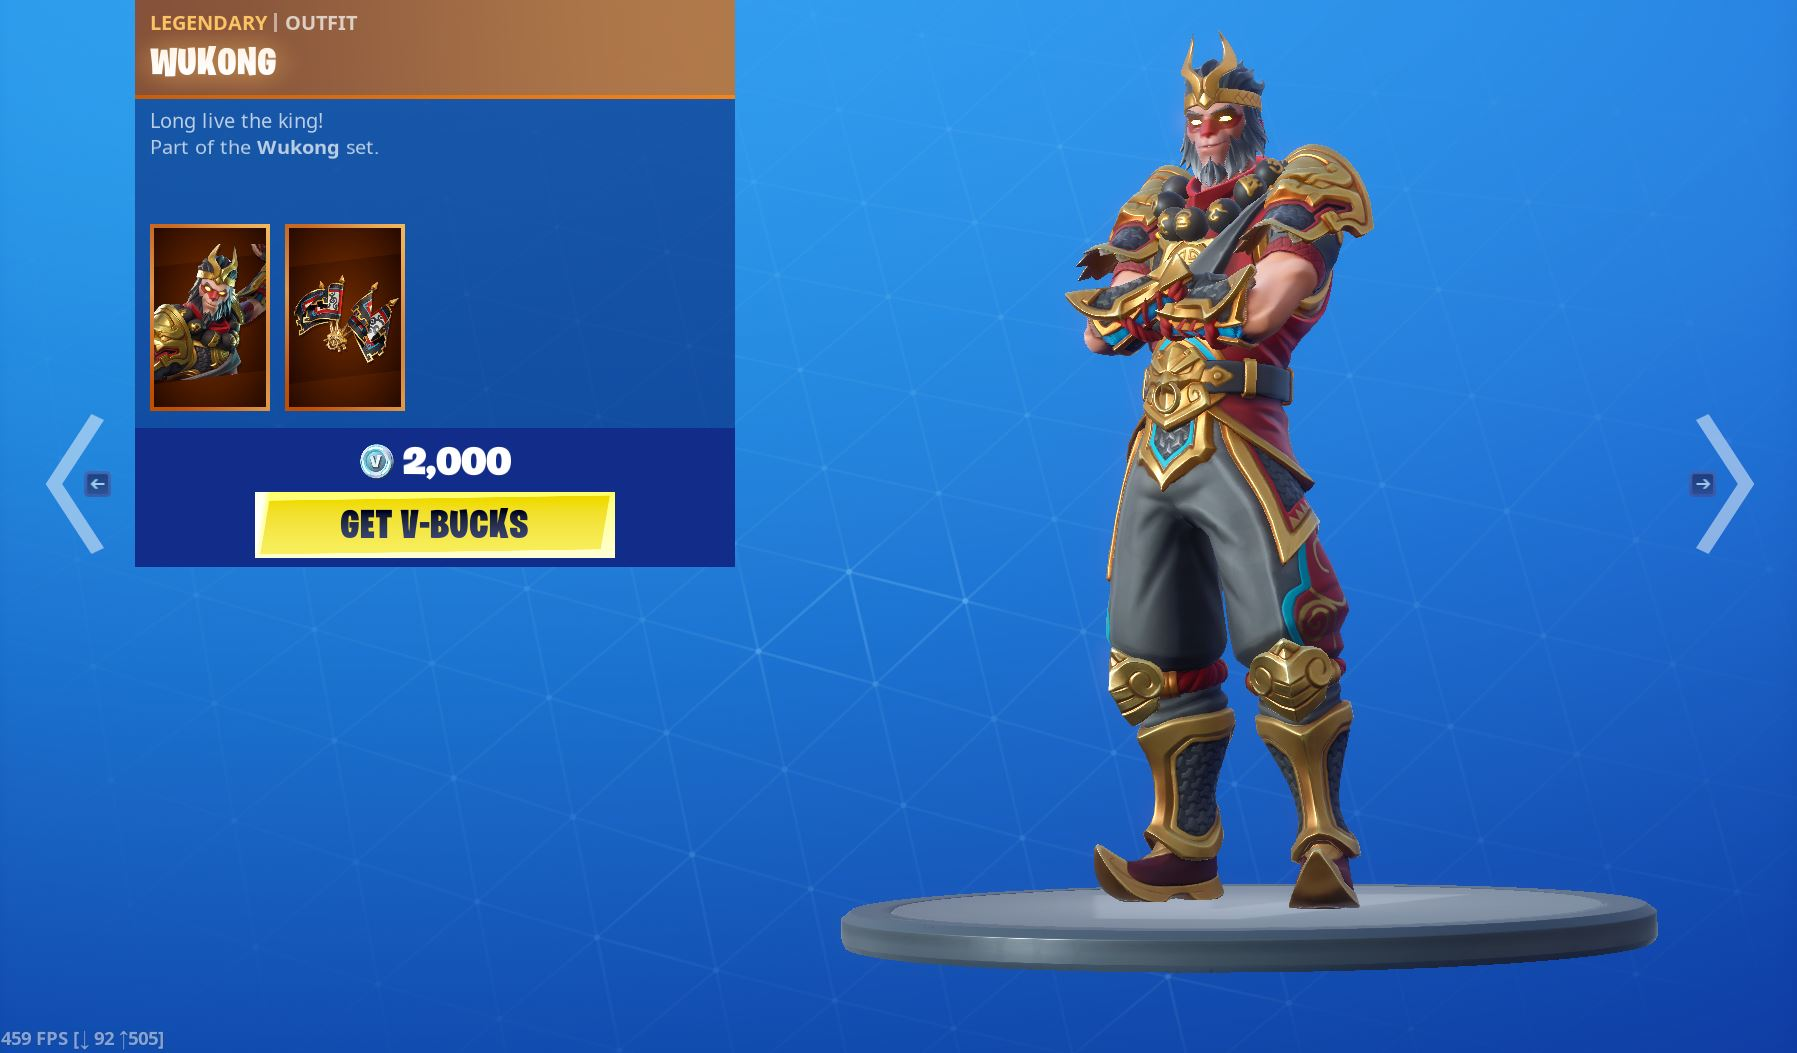 Legendary Wukong Bundle Outfit